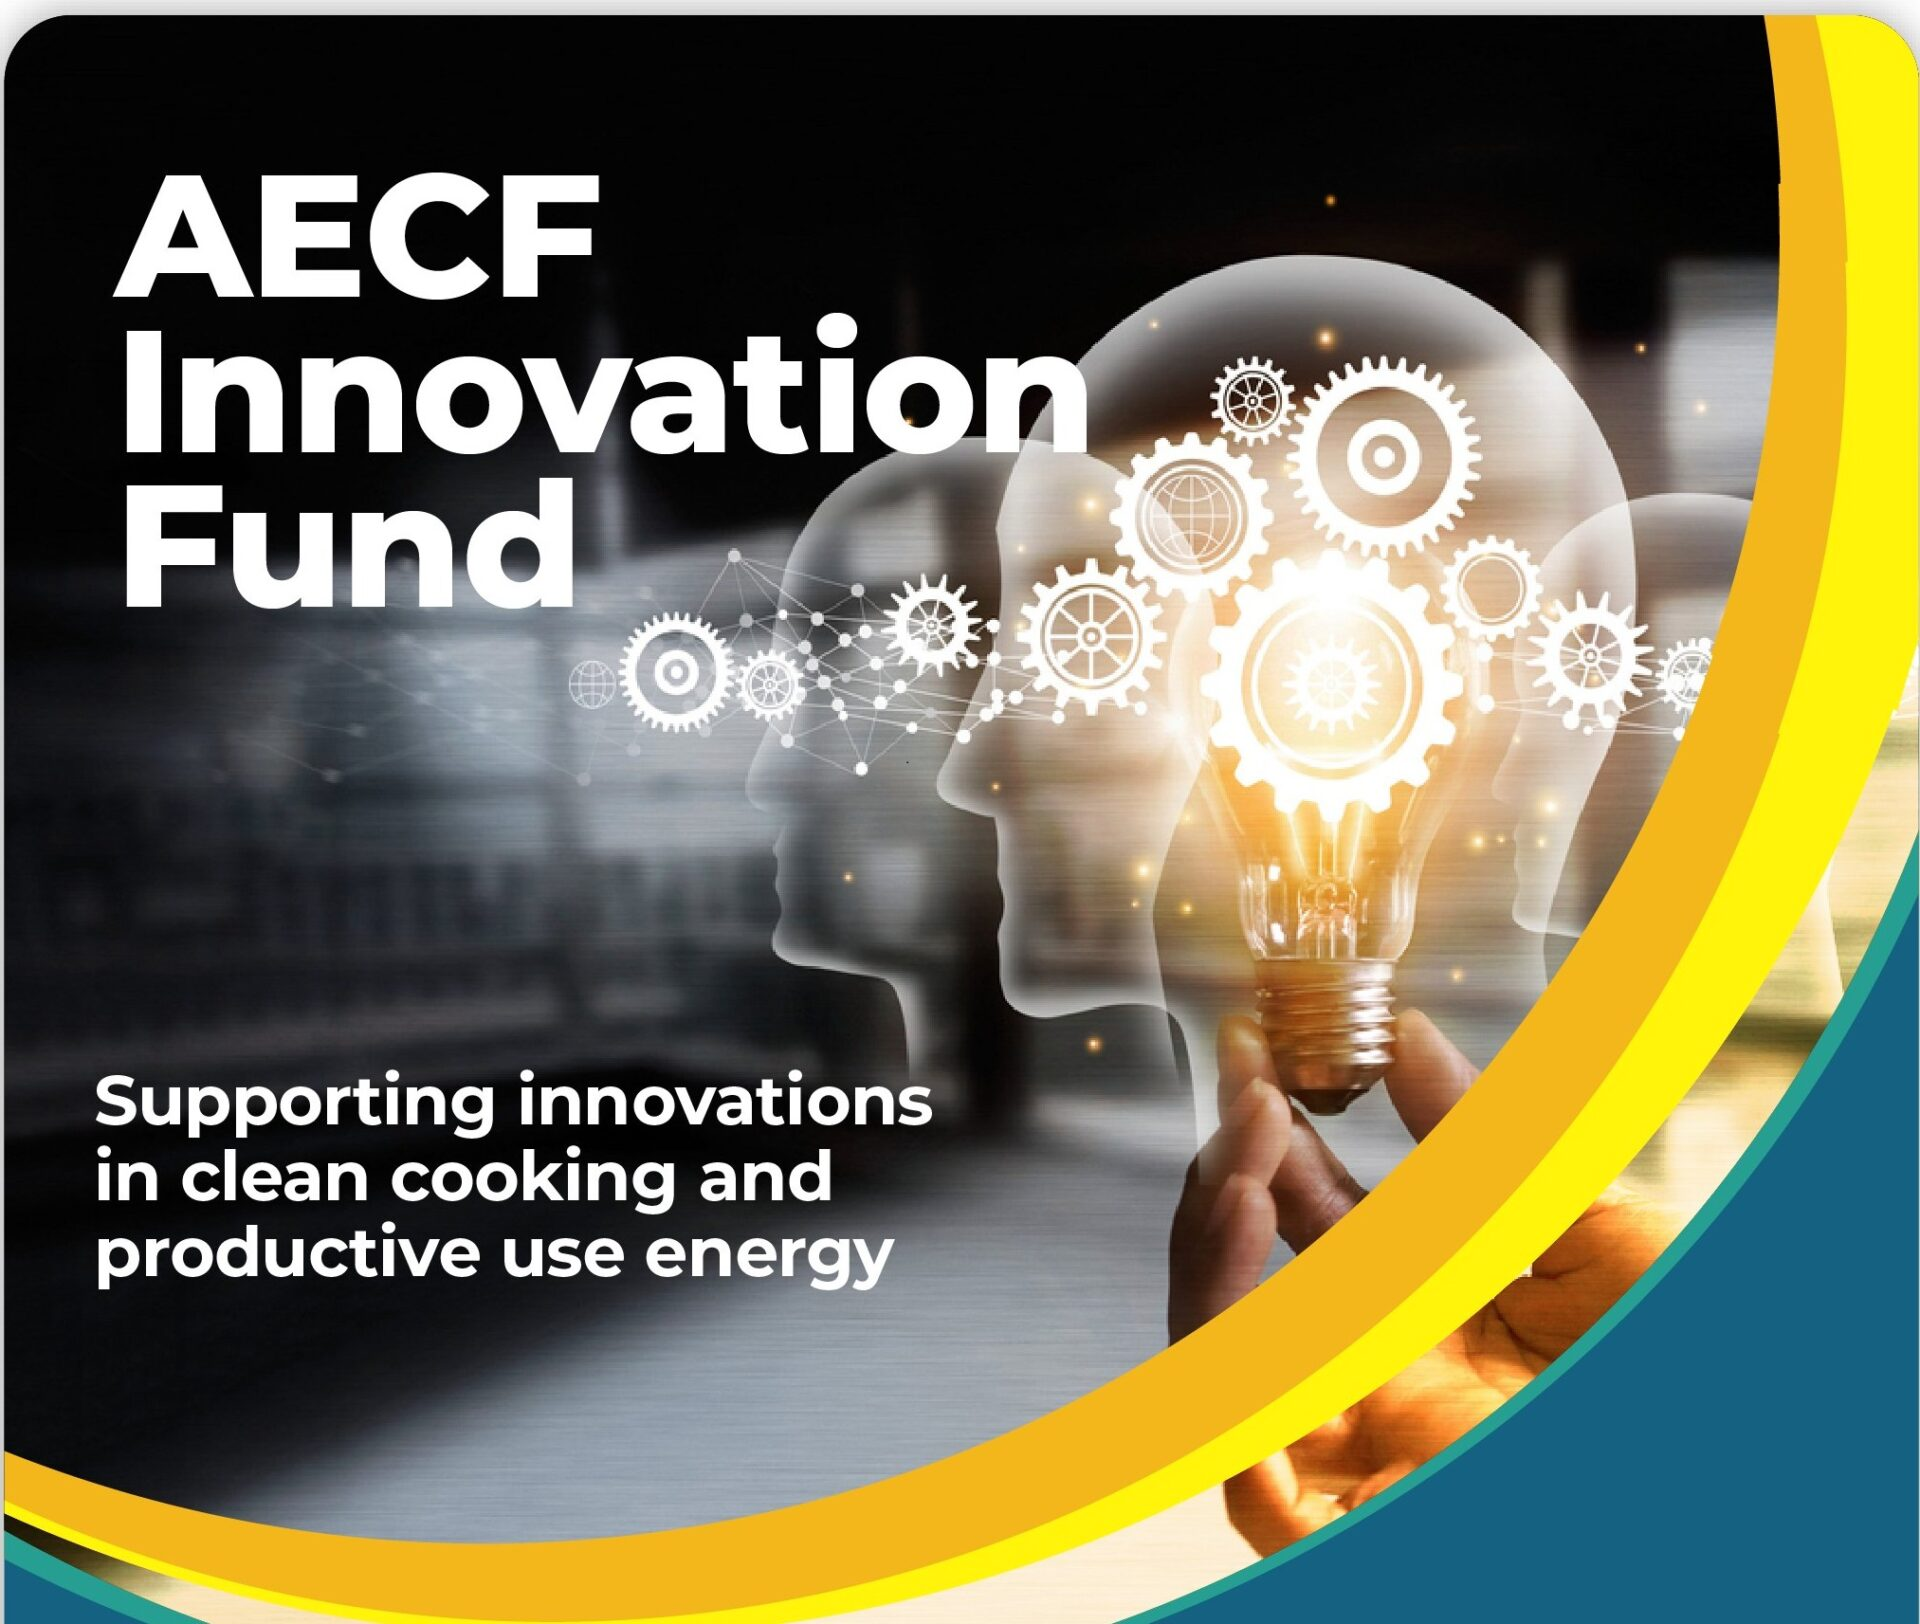 $1.2million Worth of Funding Launched by The African Enterprise Challenge Fund